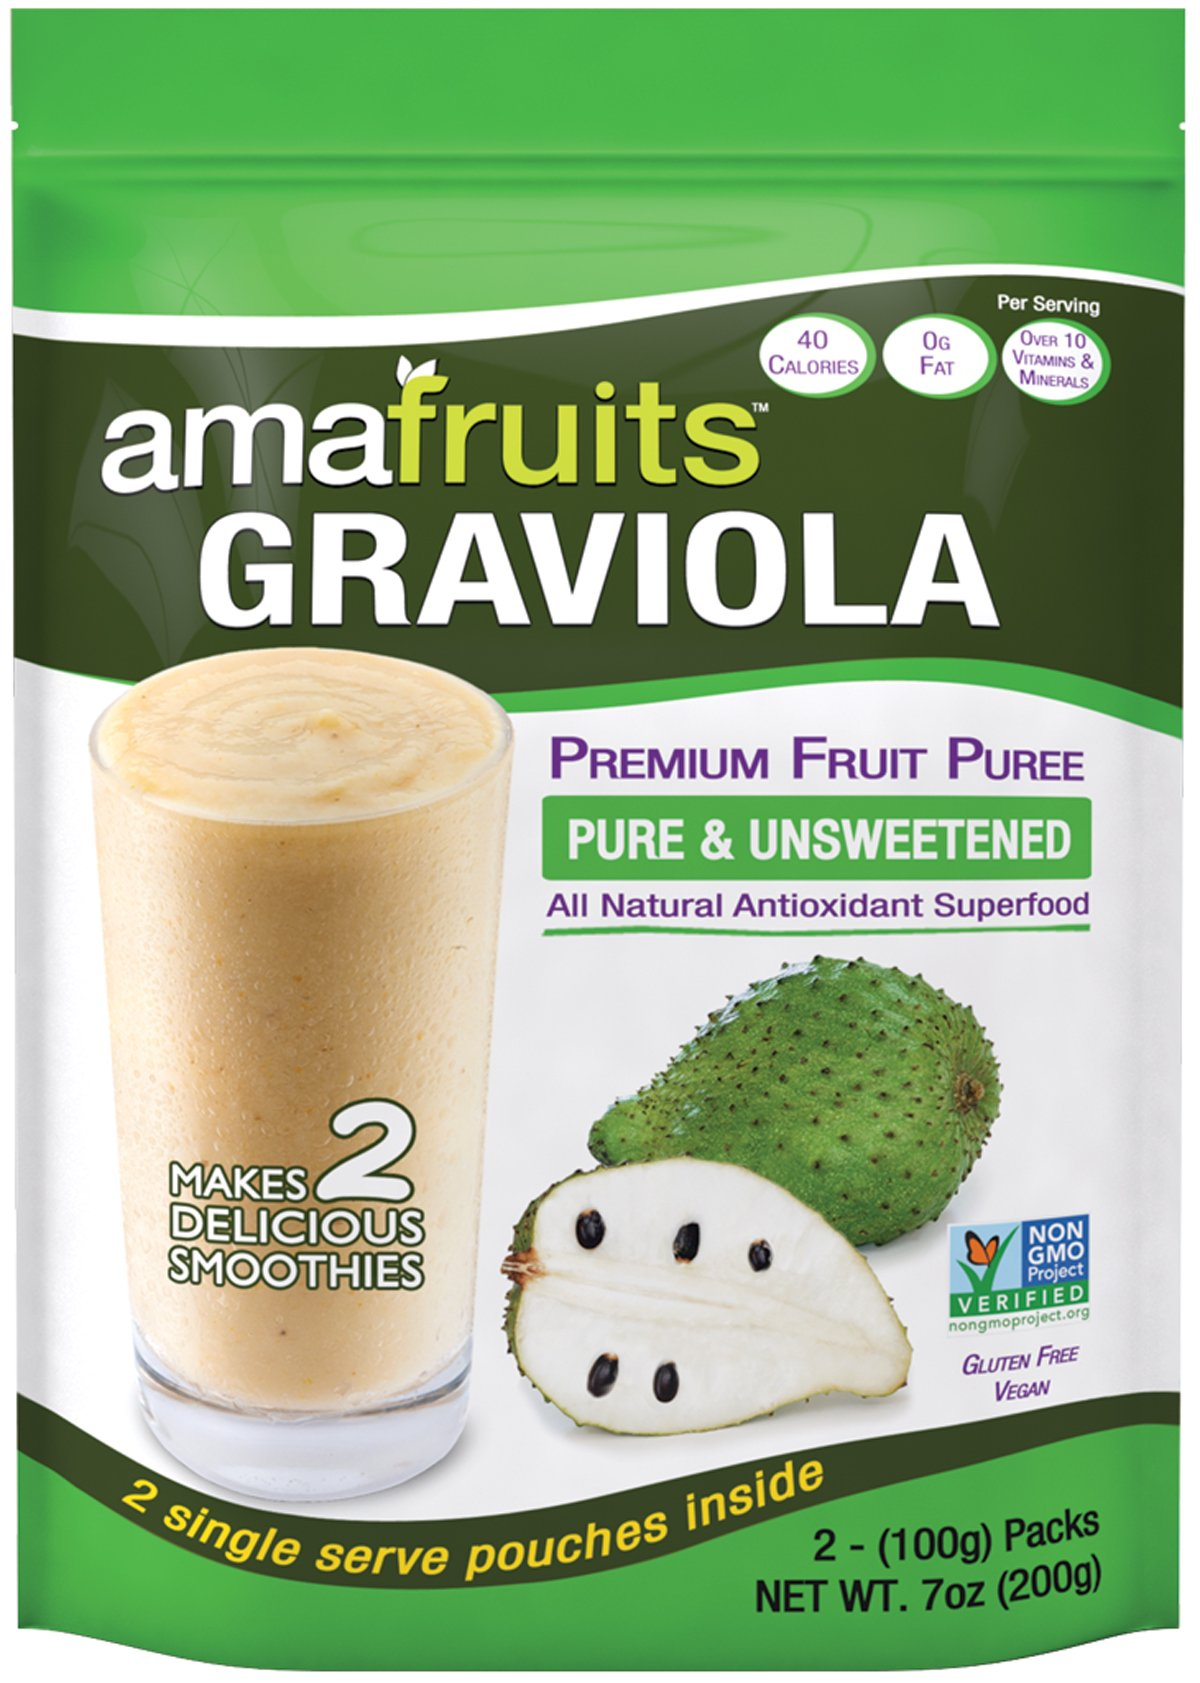 Amafruits 10 Bag Bundle of Graviola Fruit Pulp